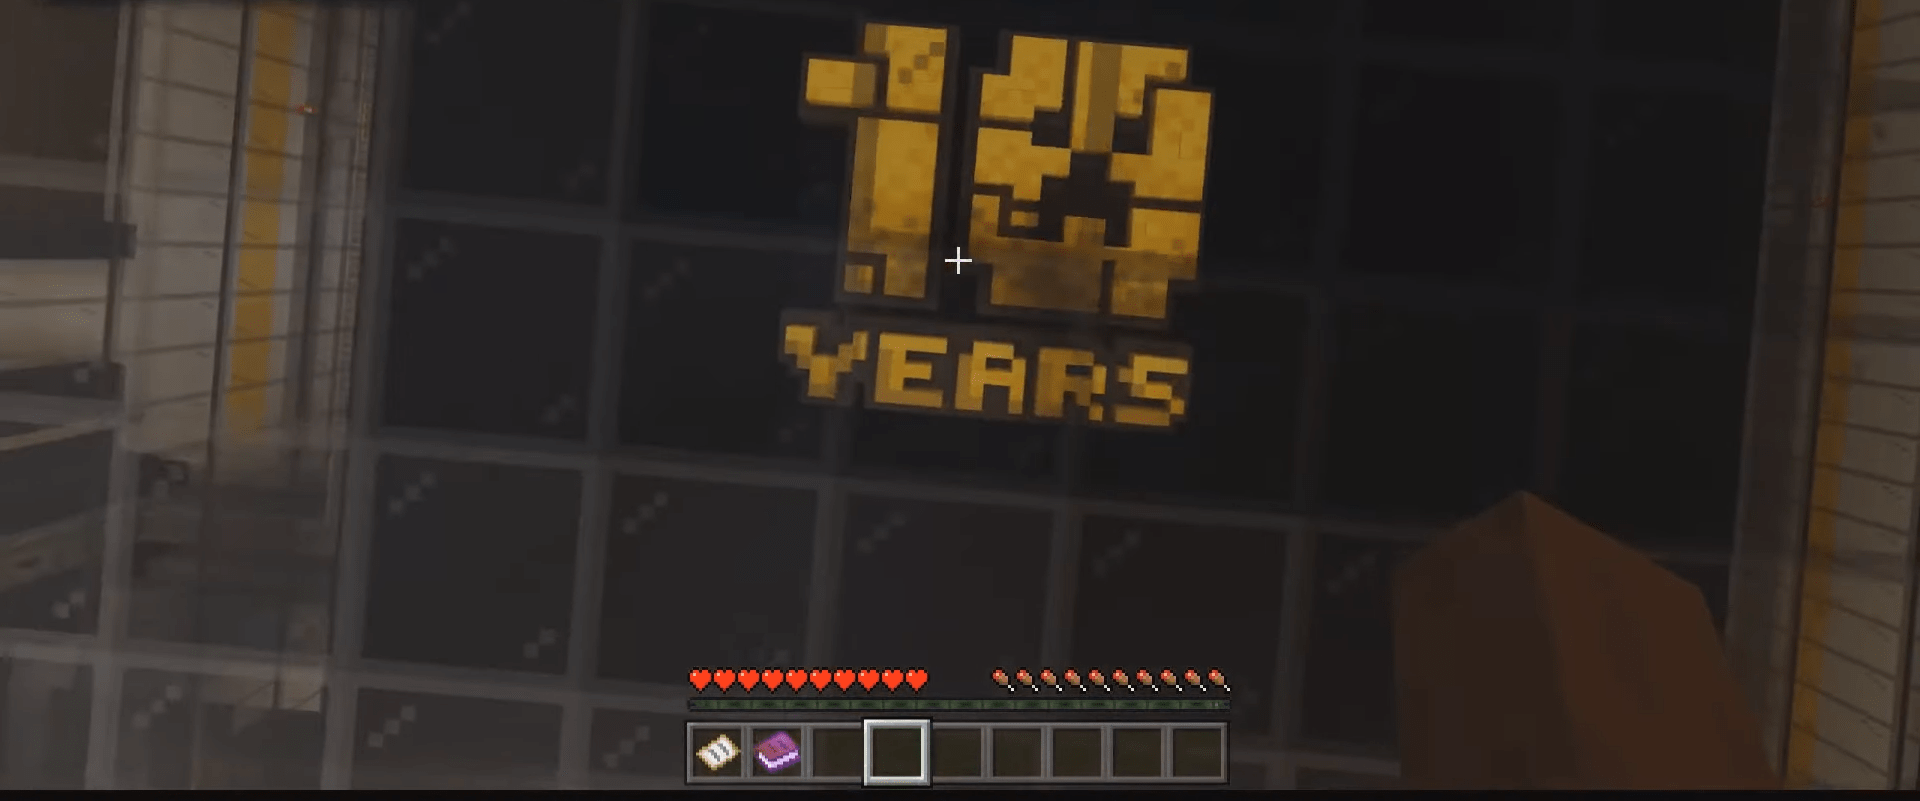 Minecraft Releases Mind-Blowing Ten Year Anniversary Map In Collaboration With Blockworks